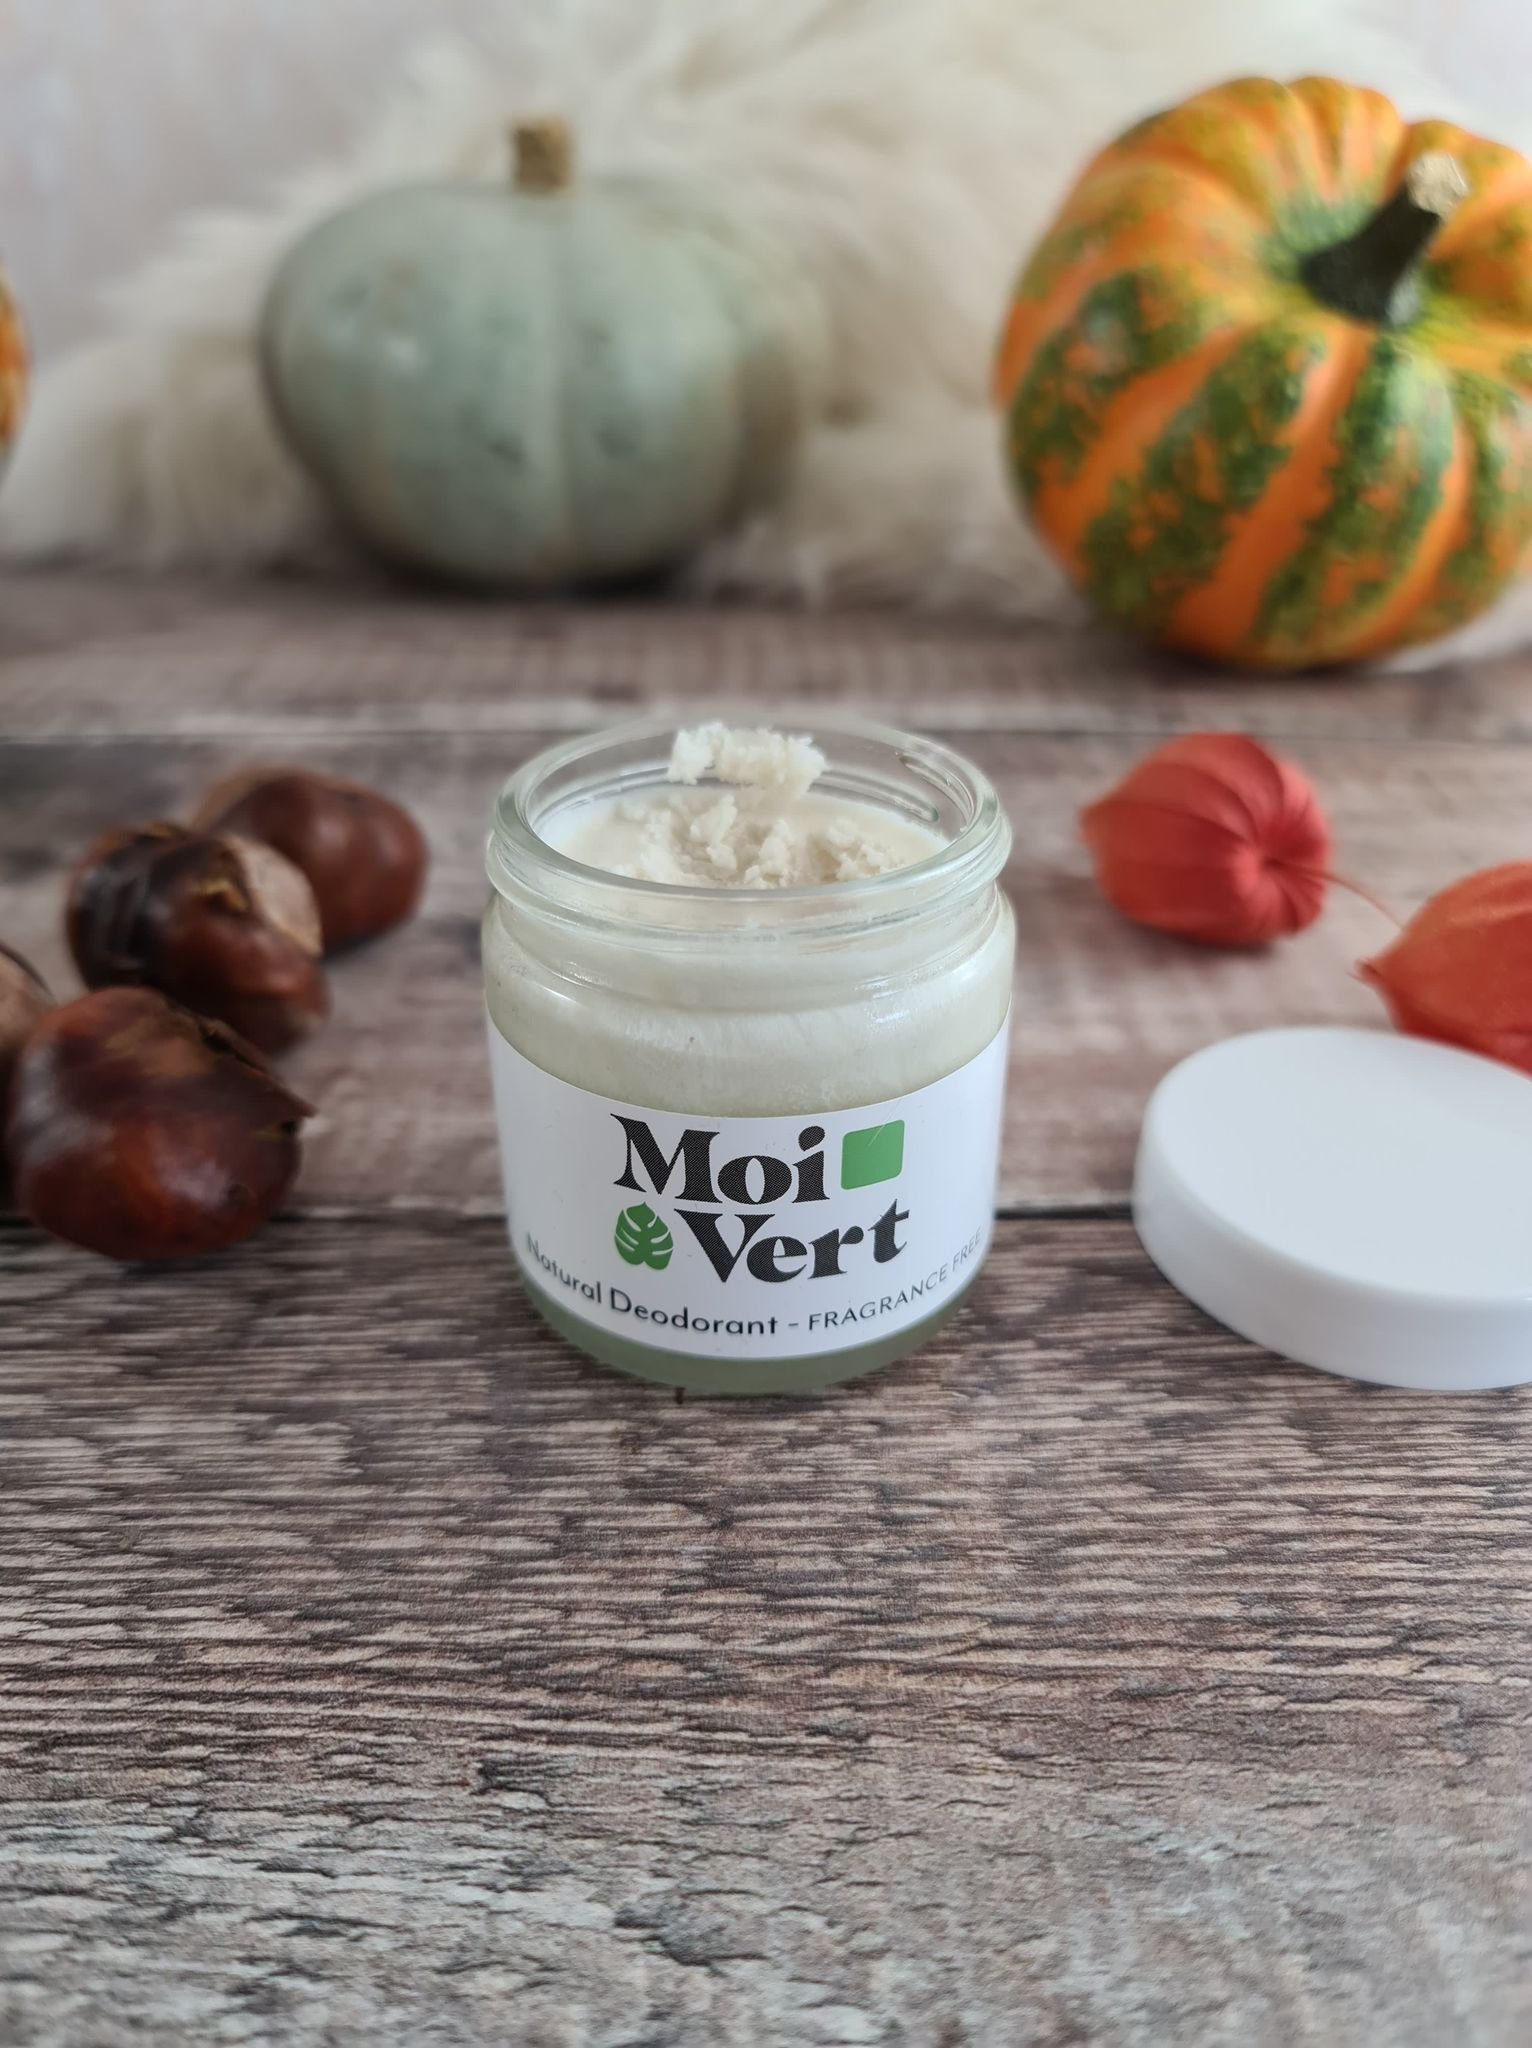 Moi Vert Natural Deodorant - Fragrance Free review